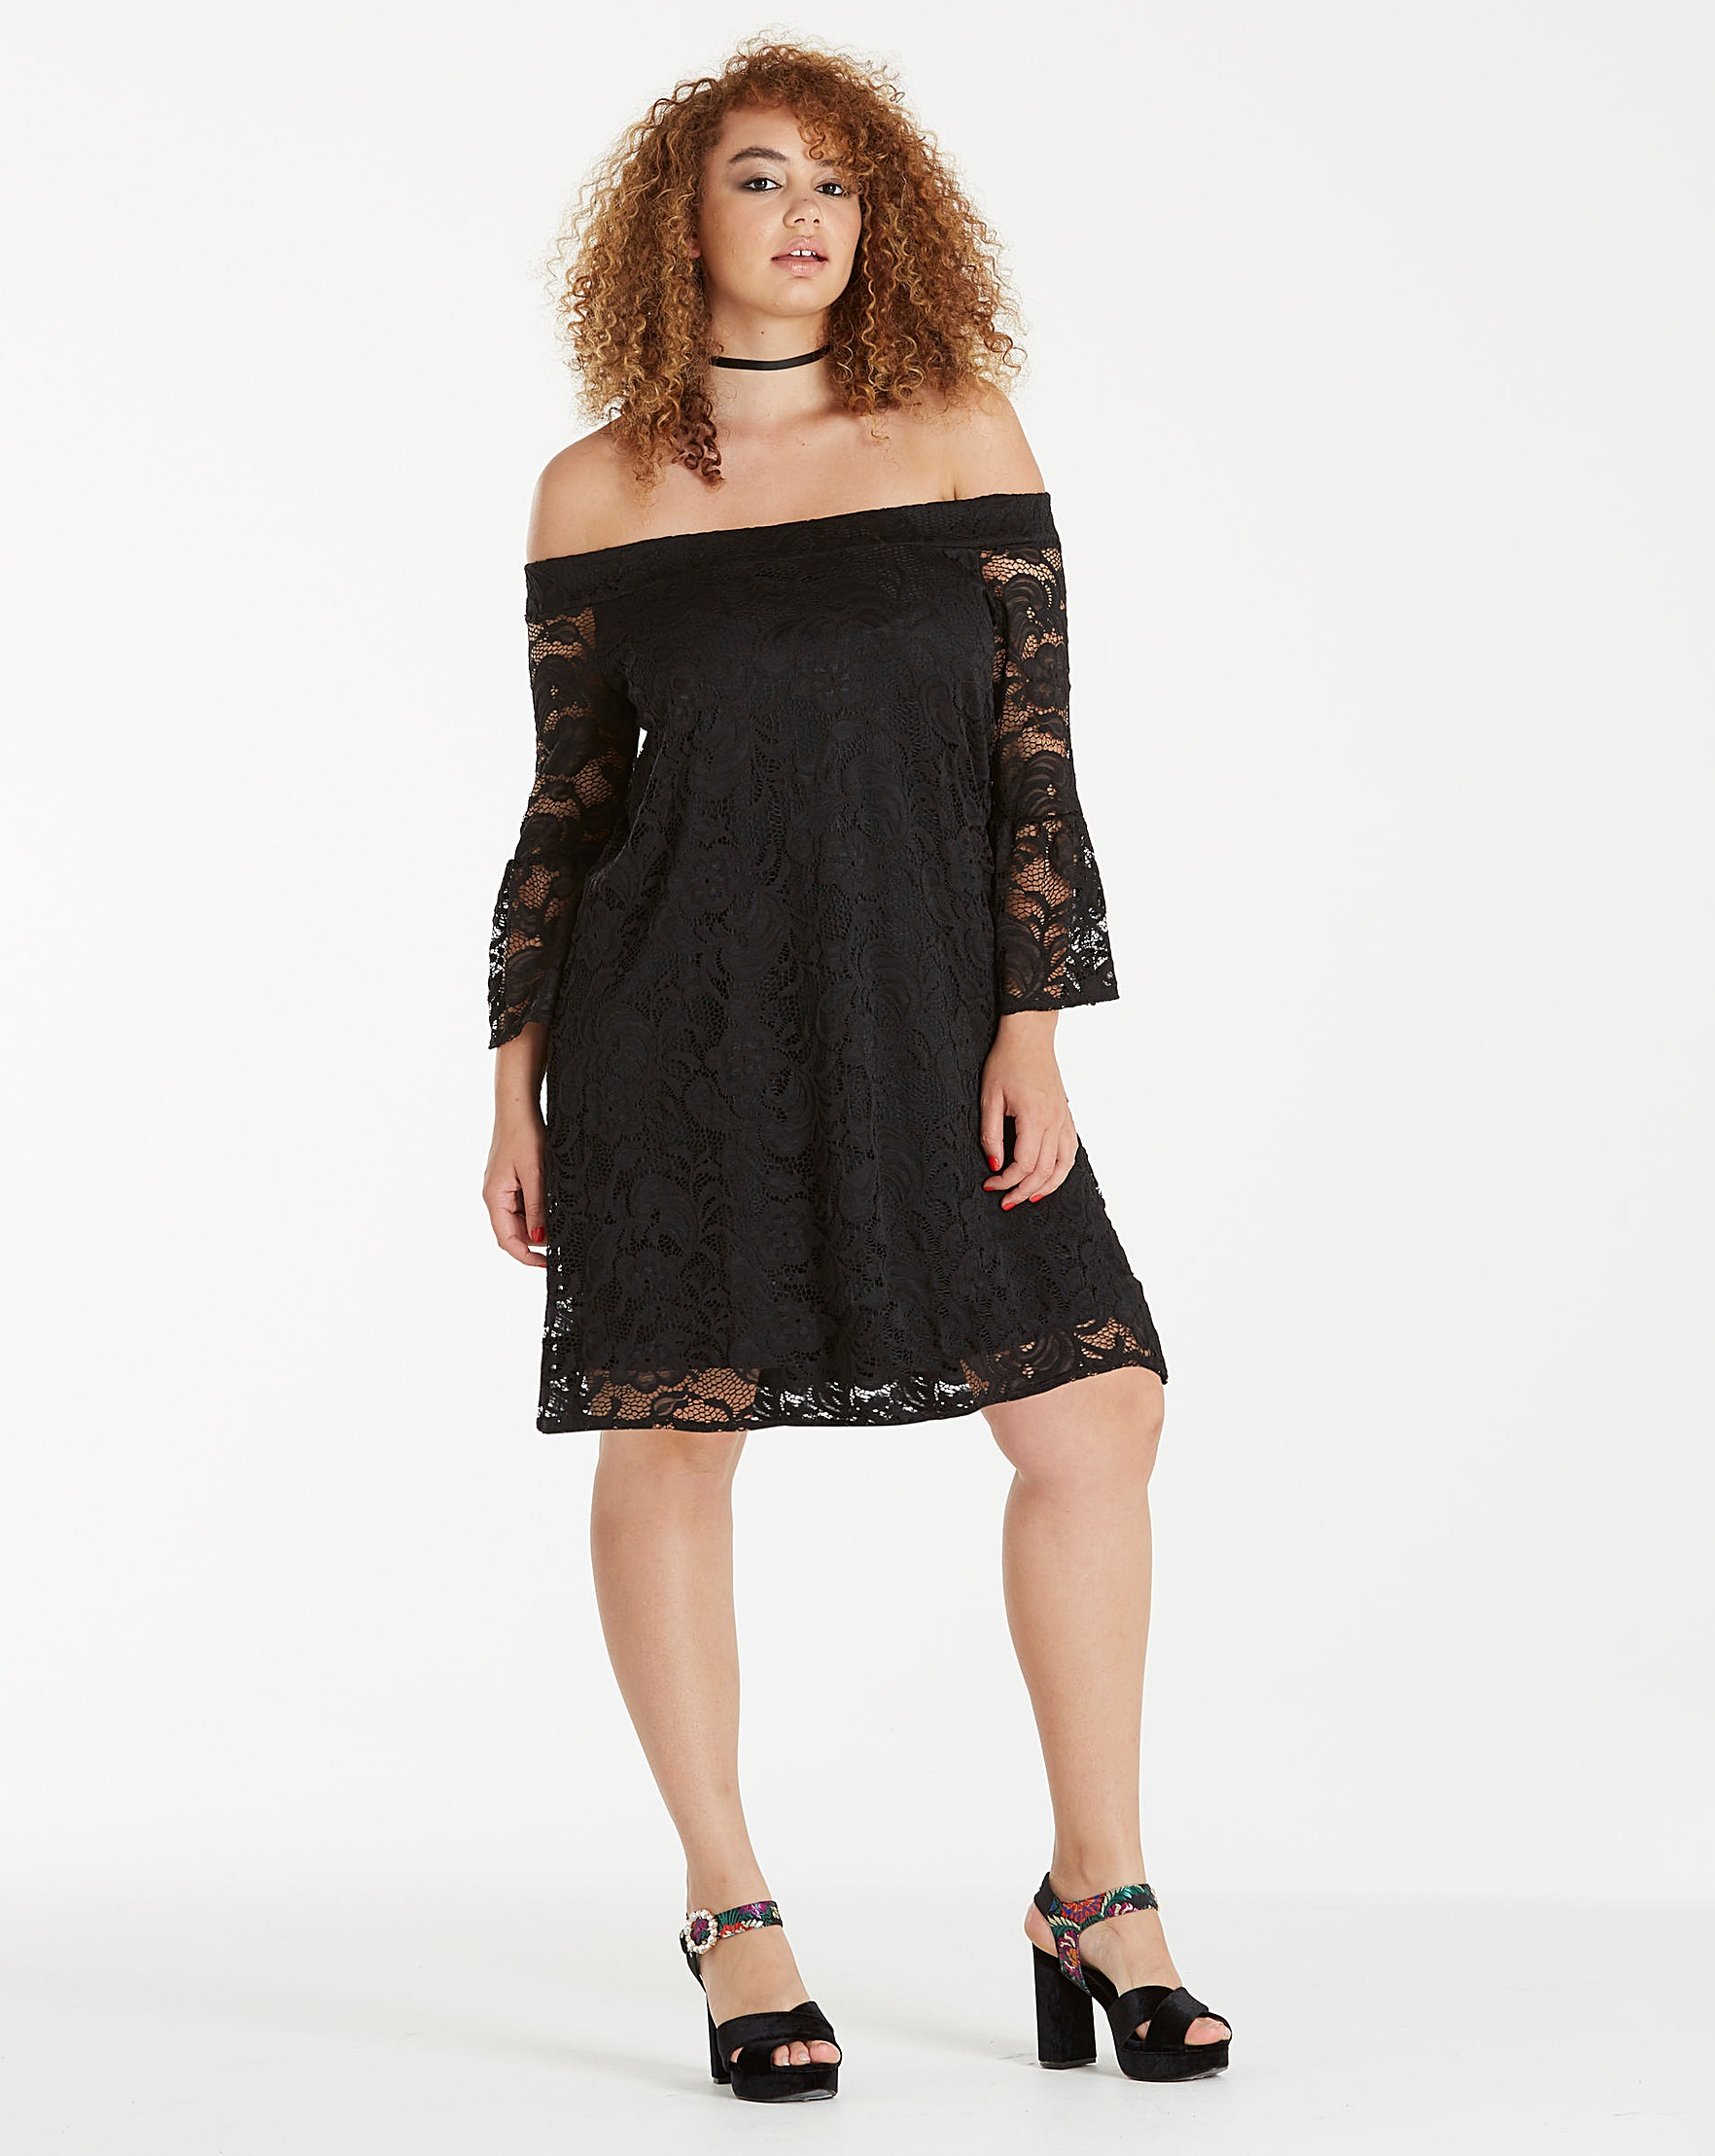 81a65d74f362 Black Lace Bardot Dress